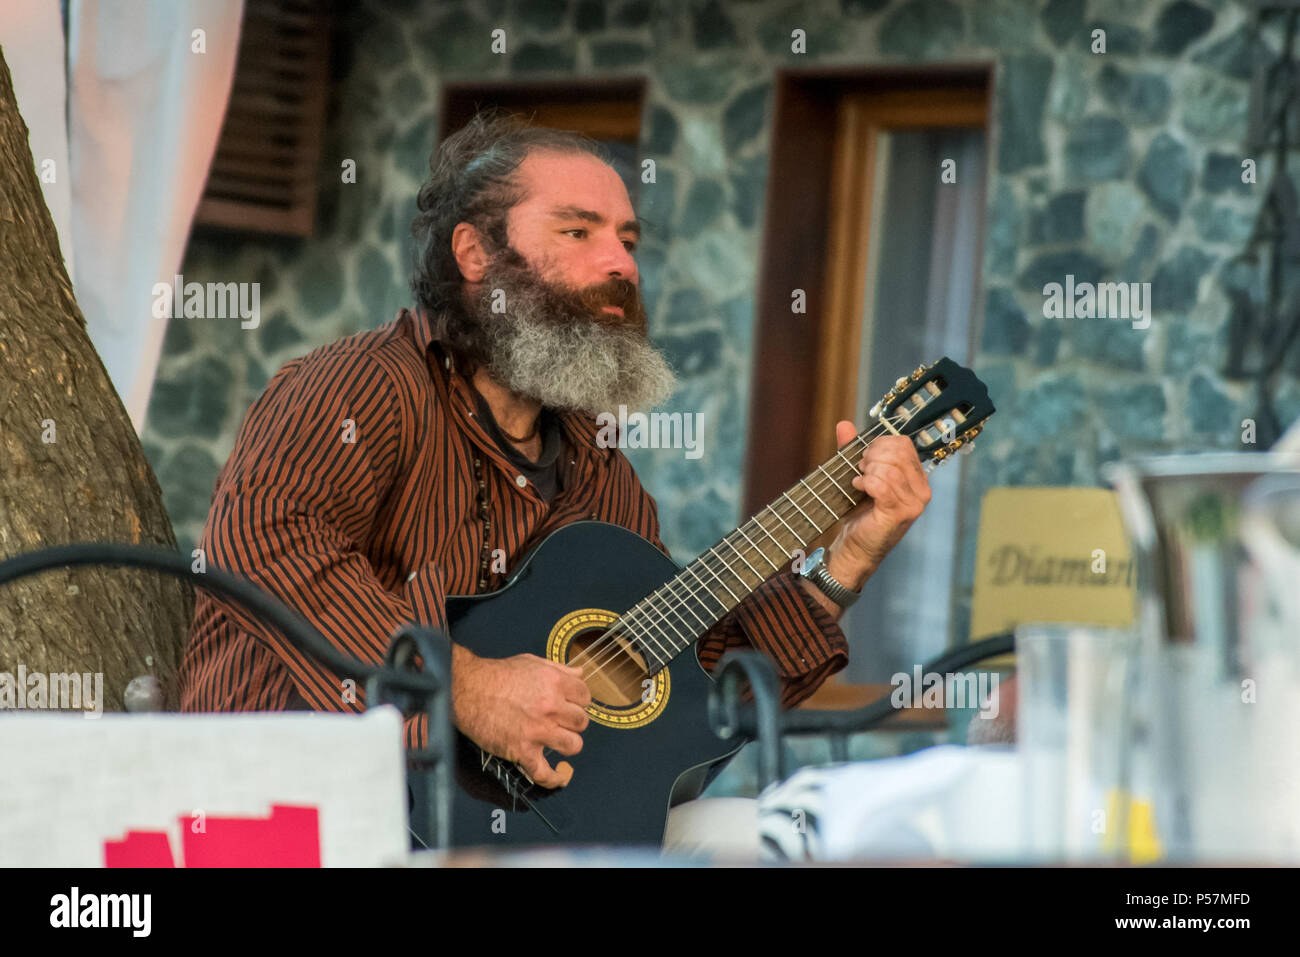 Sozopol, Bulgaria - September 11, 2016: Street musician playing music on an acoustic guitar for the entertainment of tourists in street cafe Stock Photo